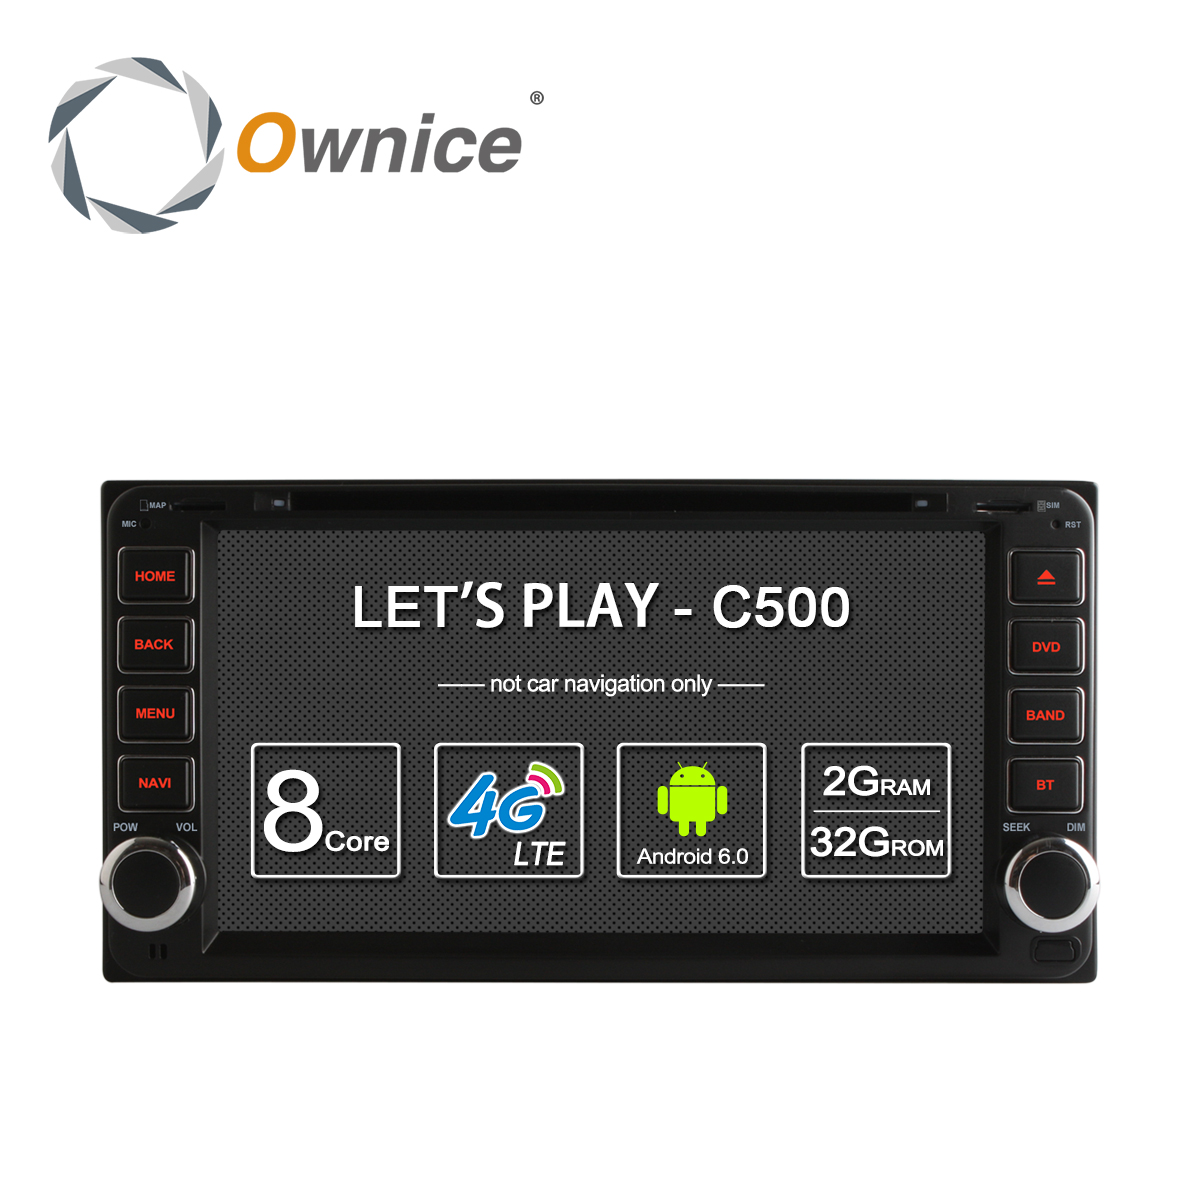 Ownice Android 6 0 Octa 8 Core 2G RAM car dvd player for Toyota Hilux VIOS